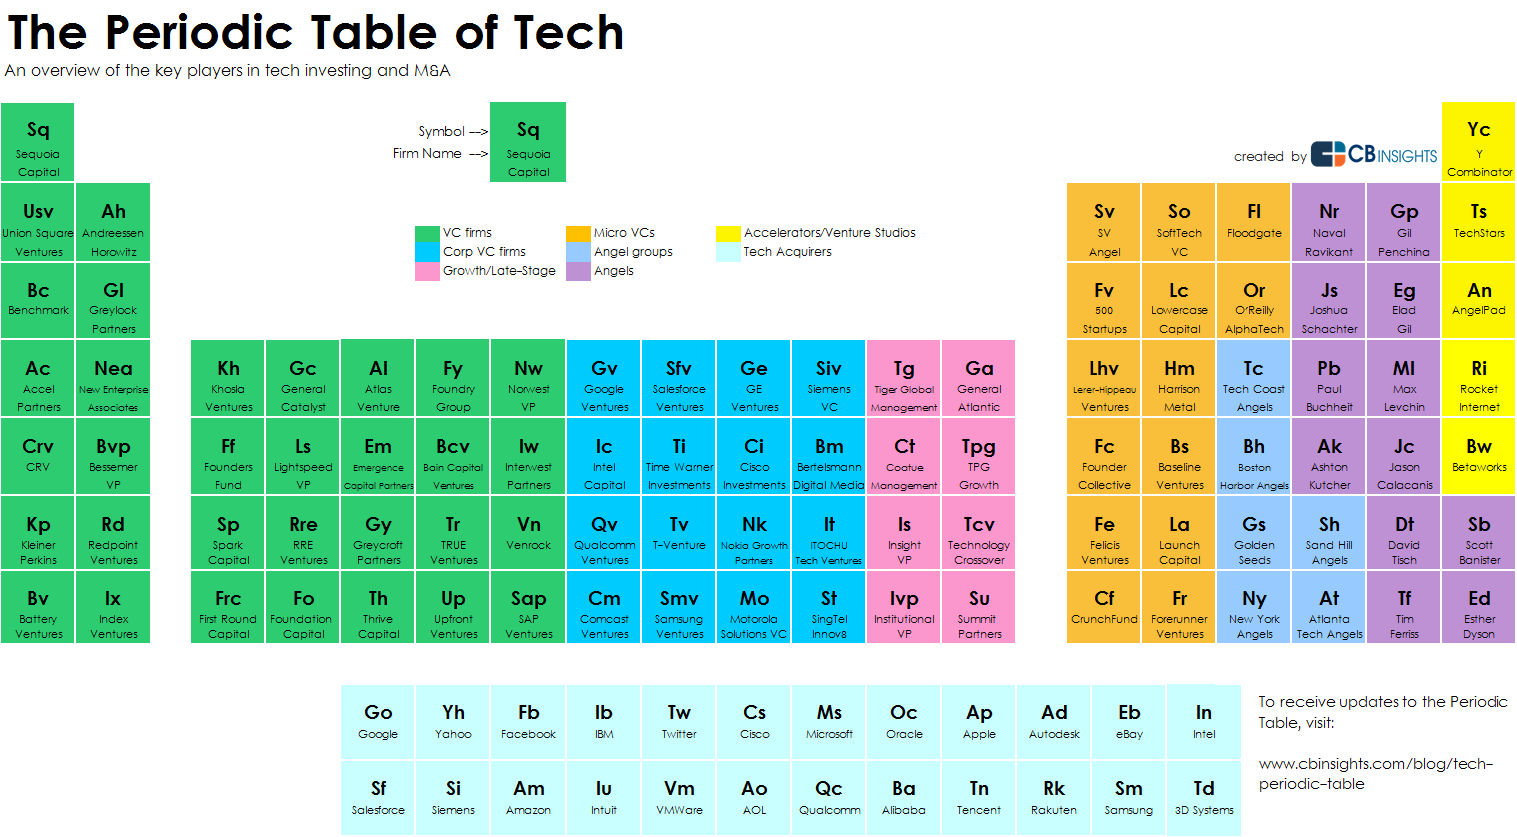 The periodic table of tech investing - GeekWire